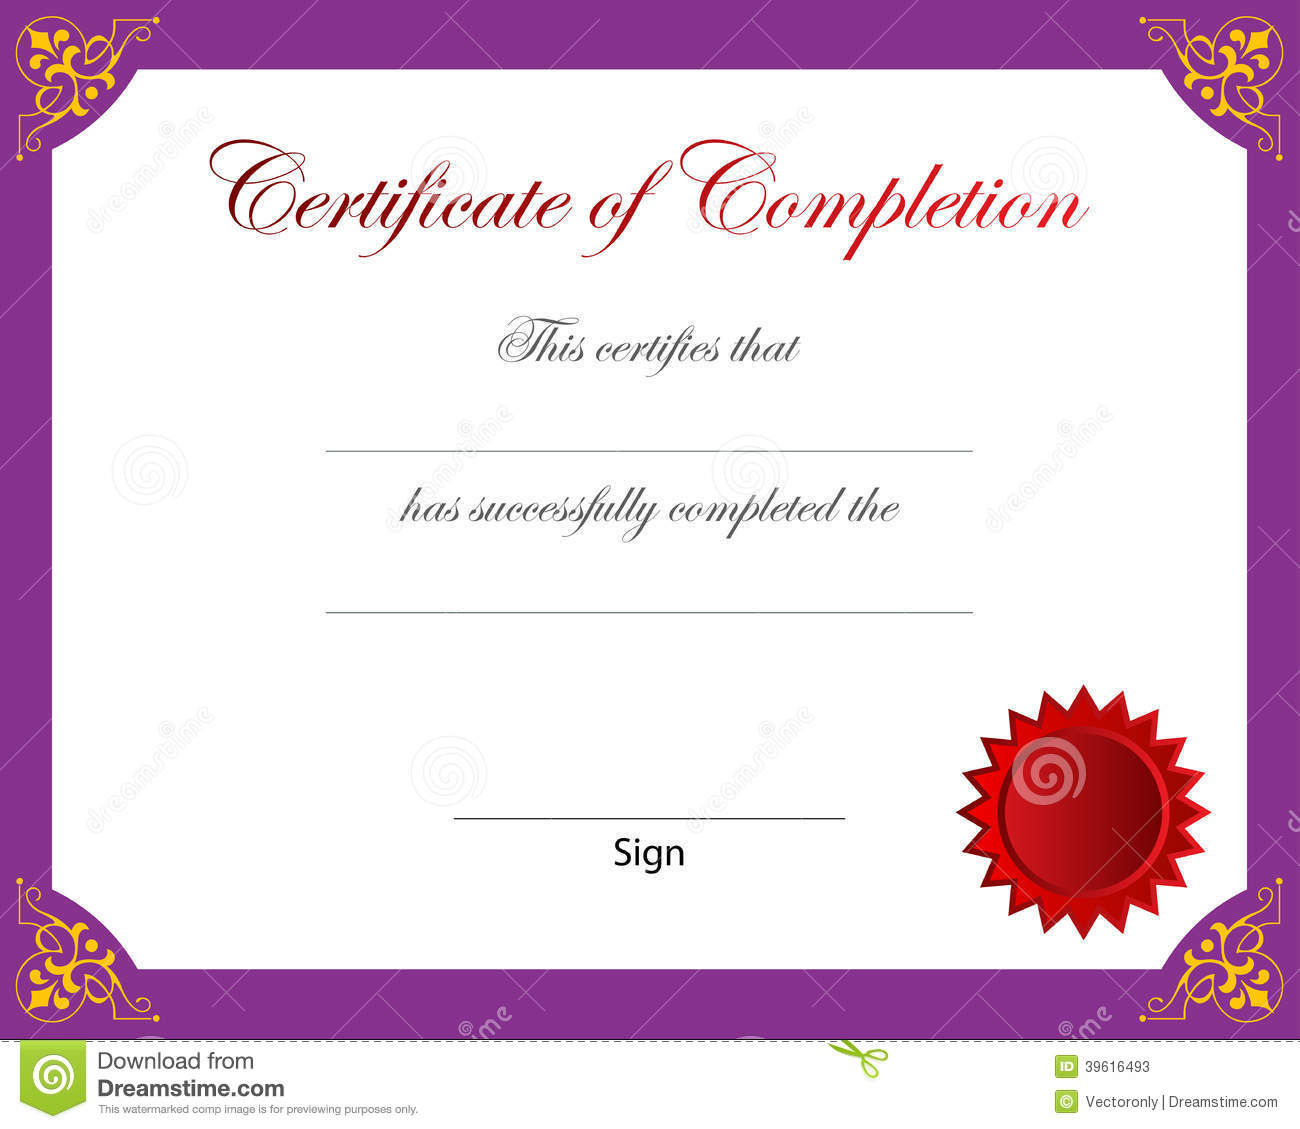 Certificate Of Completion Stock Vector - Image: 39616493